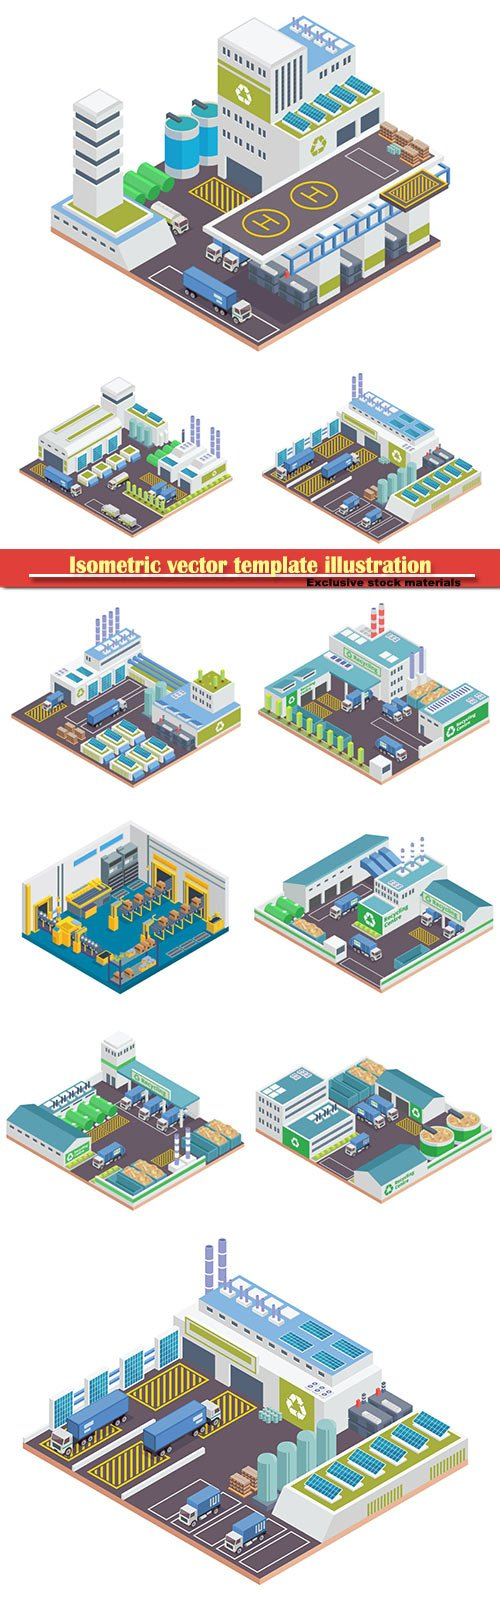 Isometric vector template illustration # 37